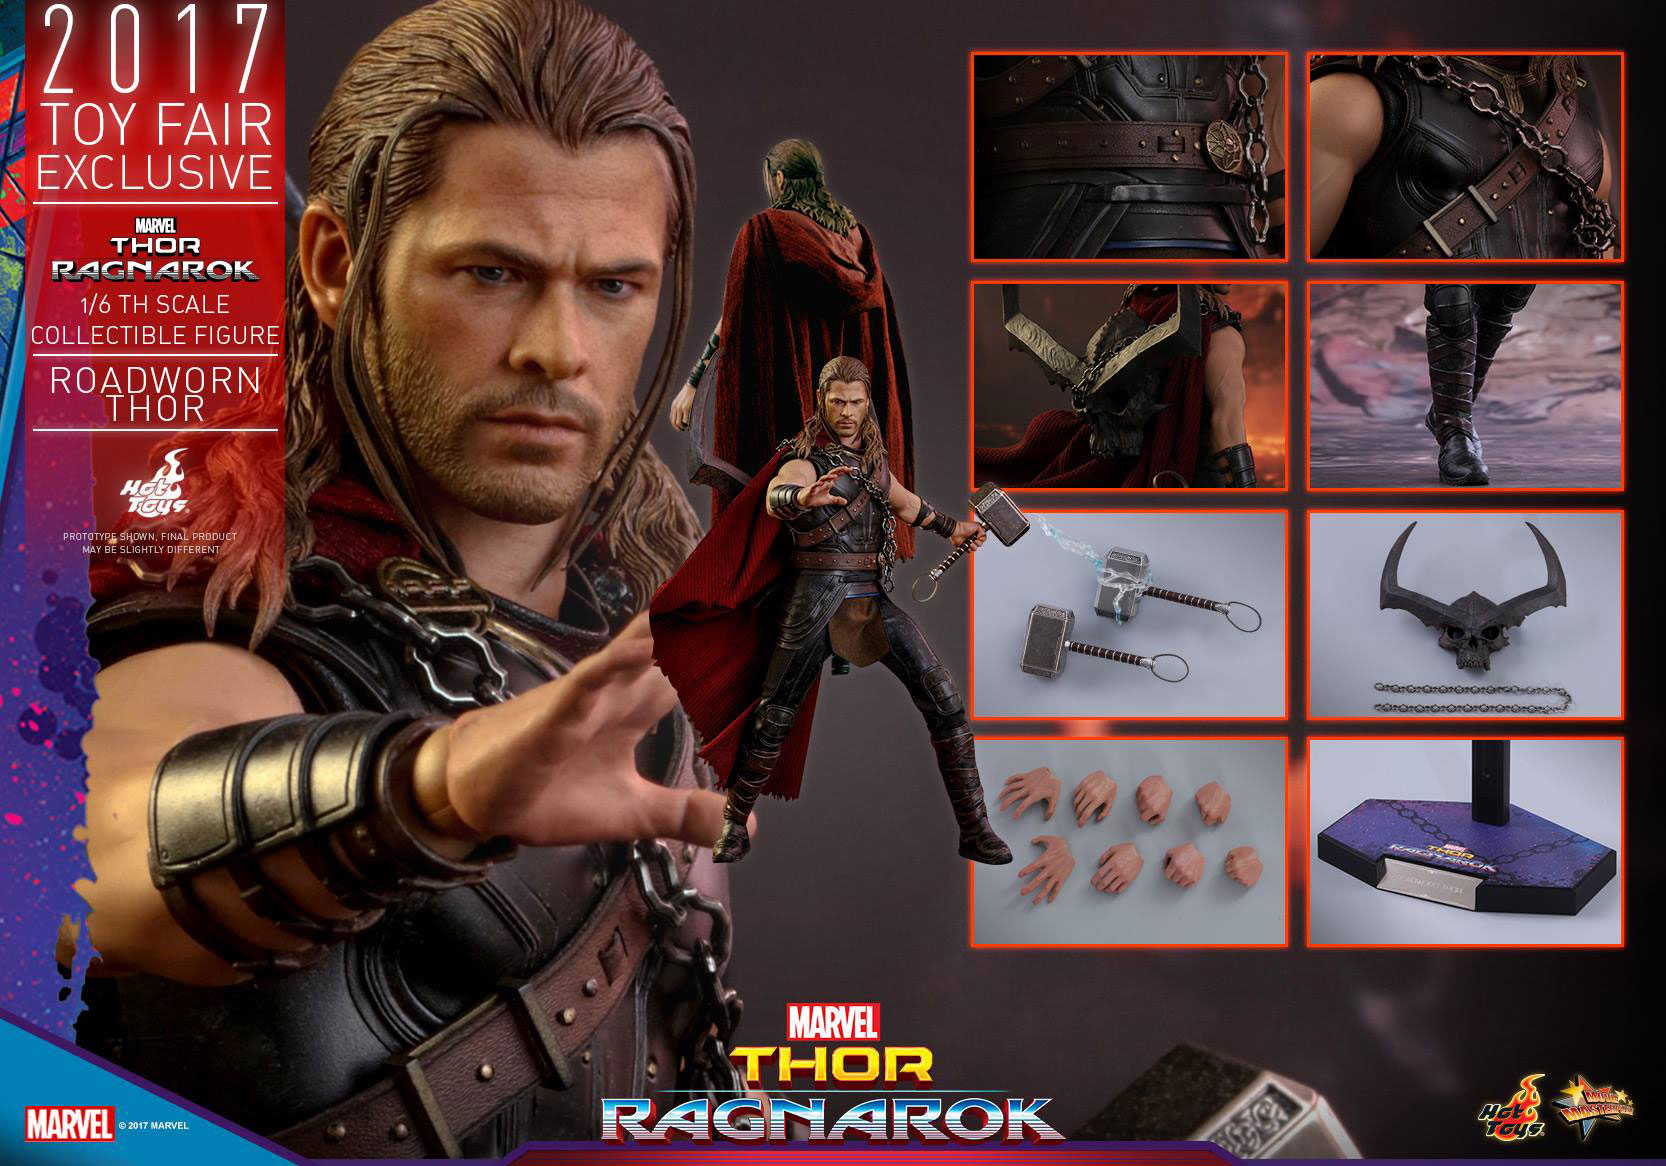 thor-ragnarok-roadworn-thor-hot-toys-figure-1